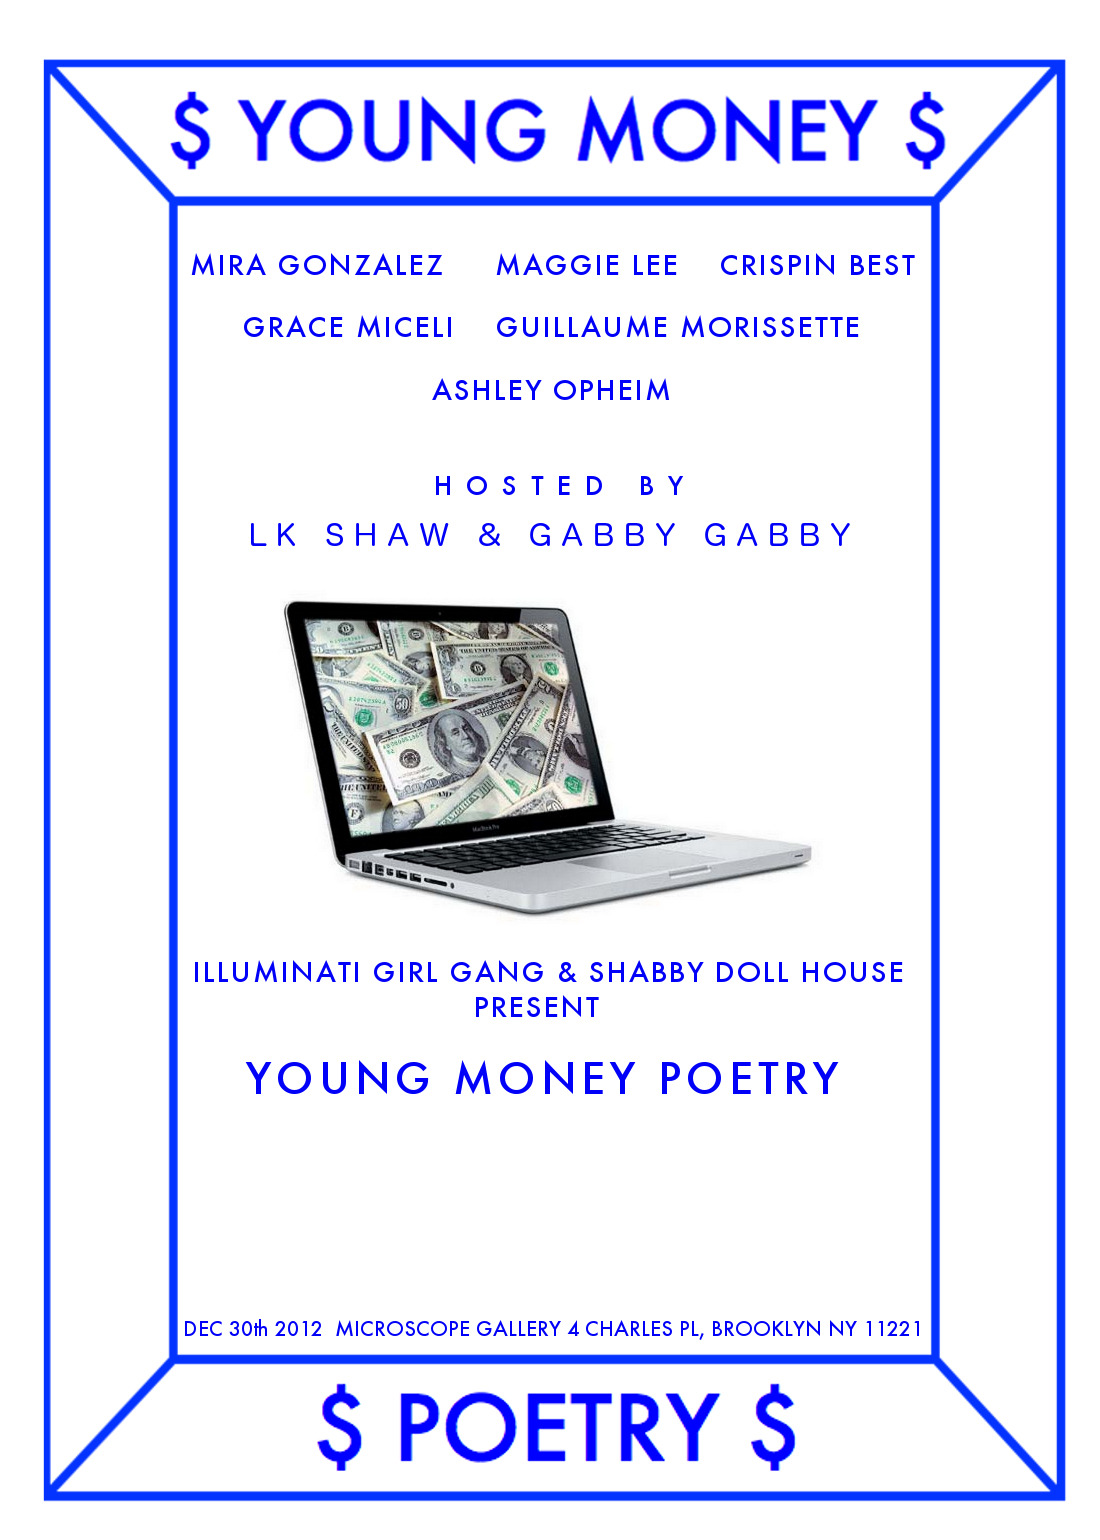 altlitgossip:  hot damn. seemstween:  i'm hosting a reading in brooklyn @ microscope gallery, along with LK Shaw, on the 30th. $5 charge at the door but everyone that attends will receive an exclusive YOUNG MONEY POETRY zine that features work from all of the readers.  hope to see you there!    new york people: im reading at this. come. (# $_$) /